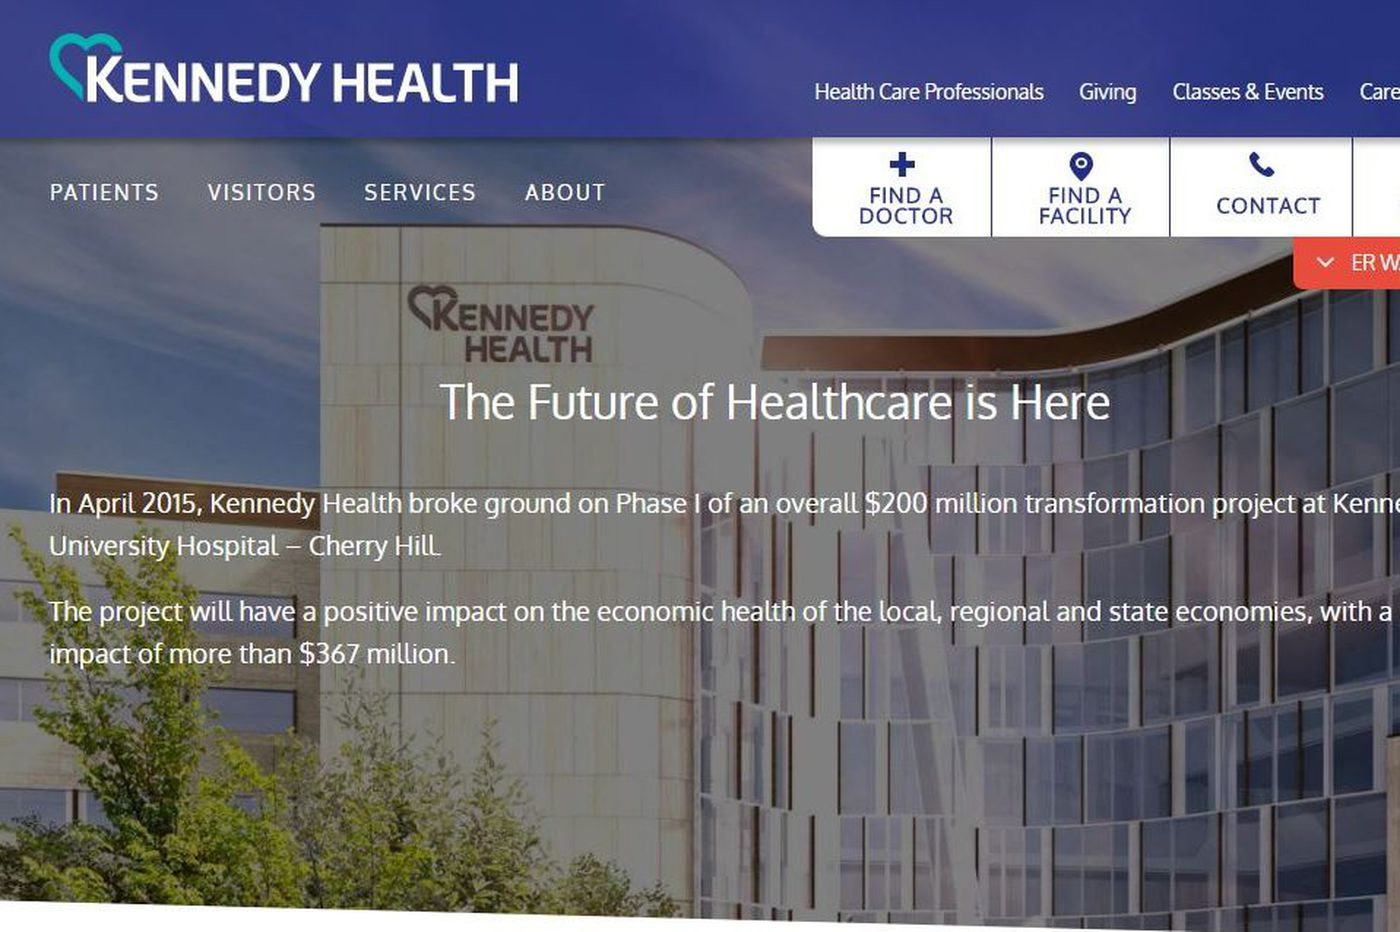 Philly's Jefferson Health completes deal with NJ's Kennedy Health